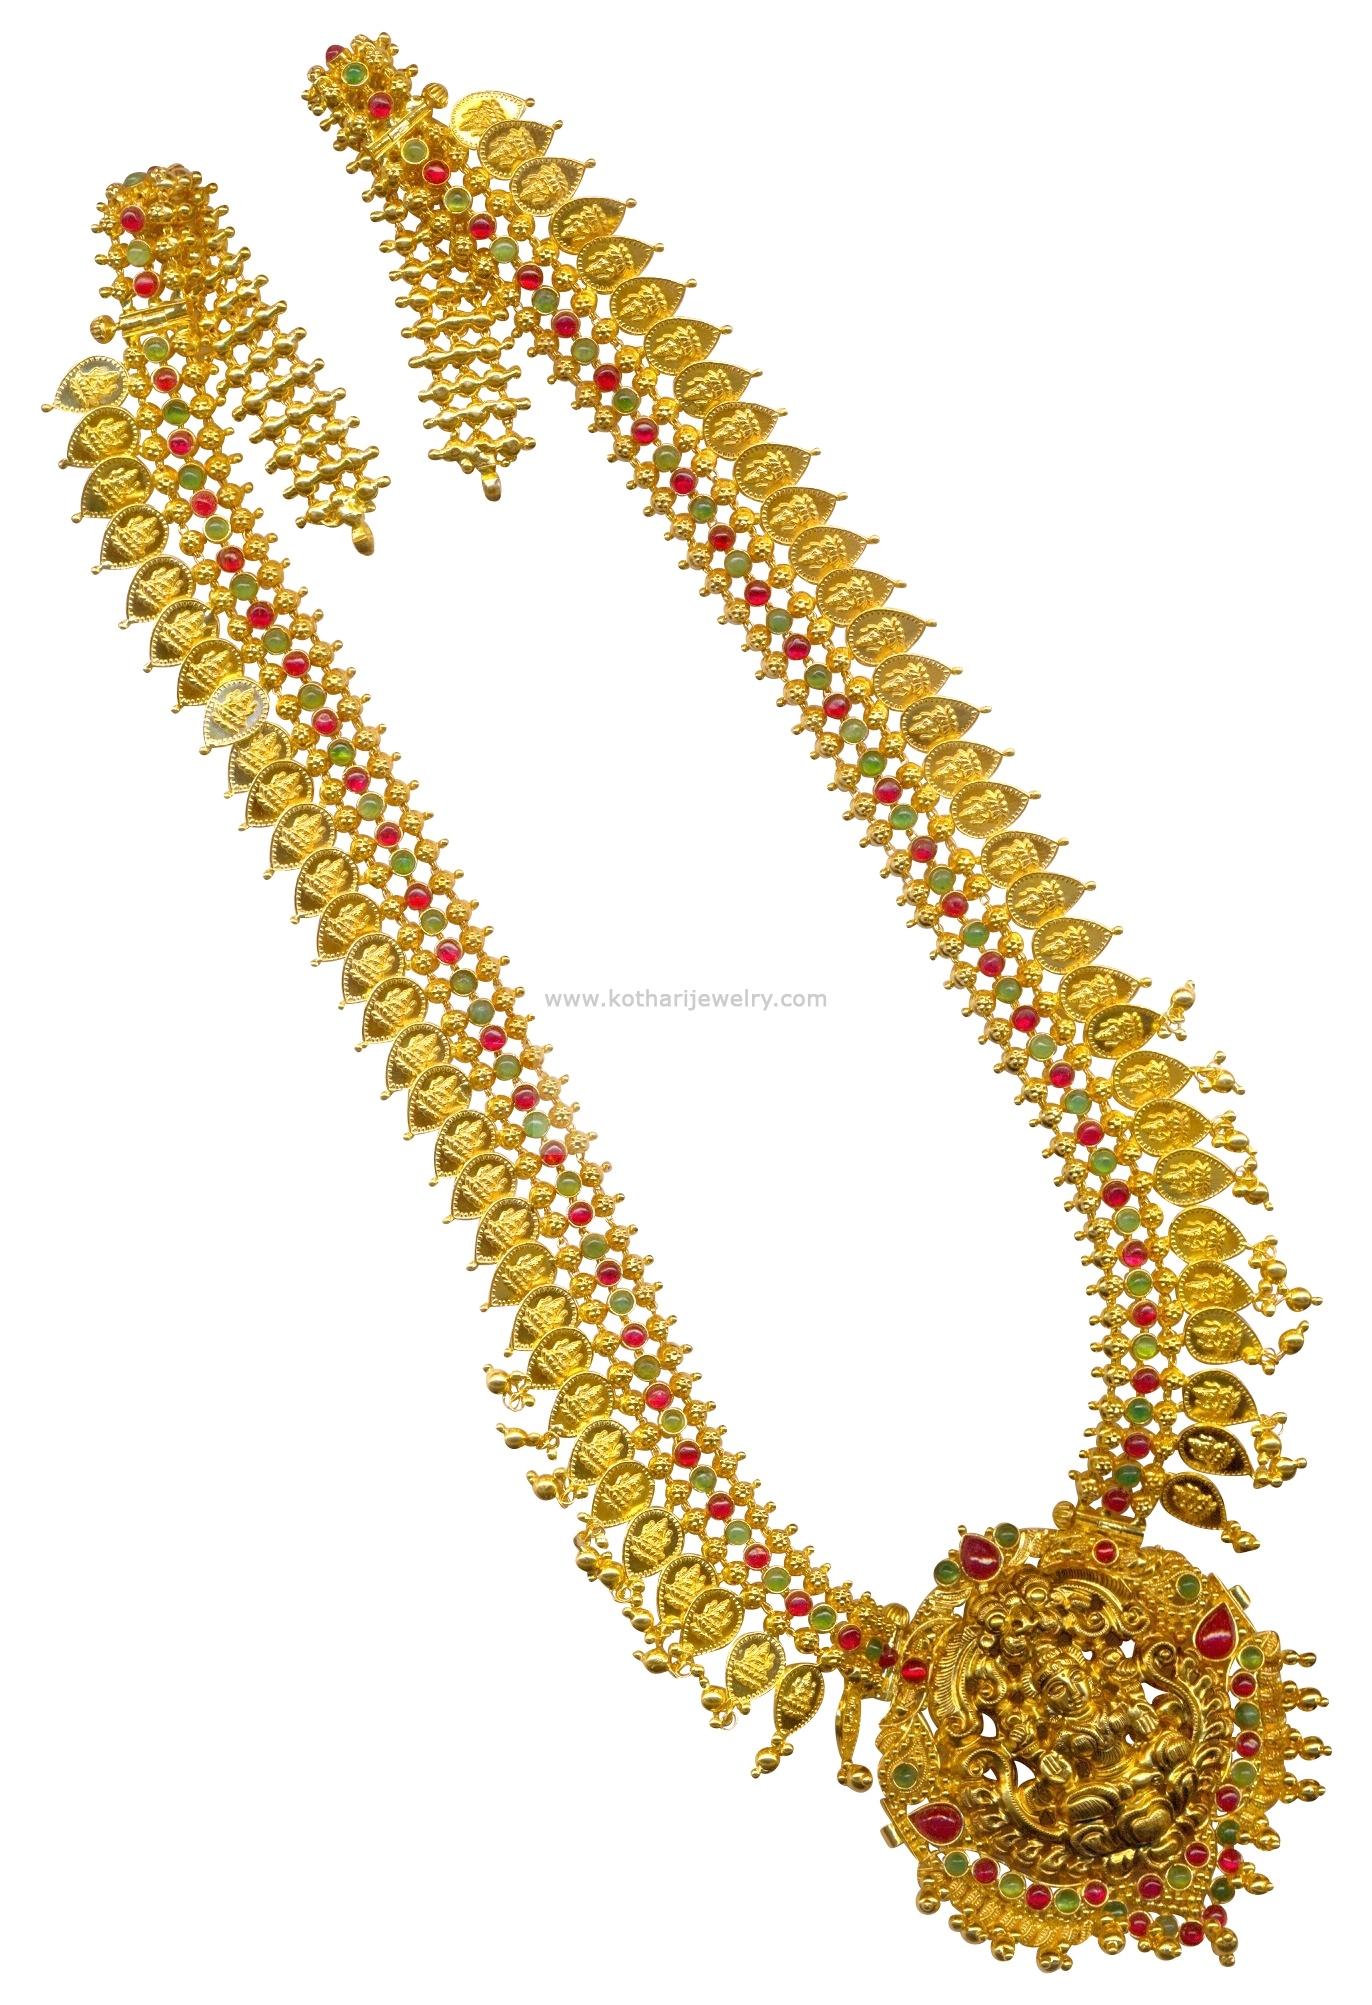 wed pealrs jagdamba sri ps gold set pendant newly